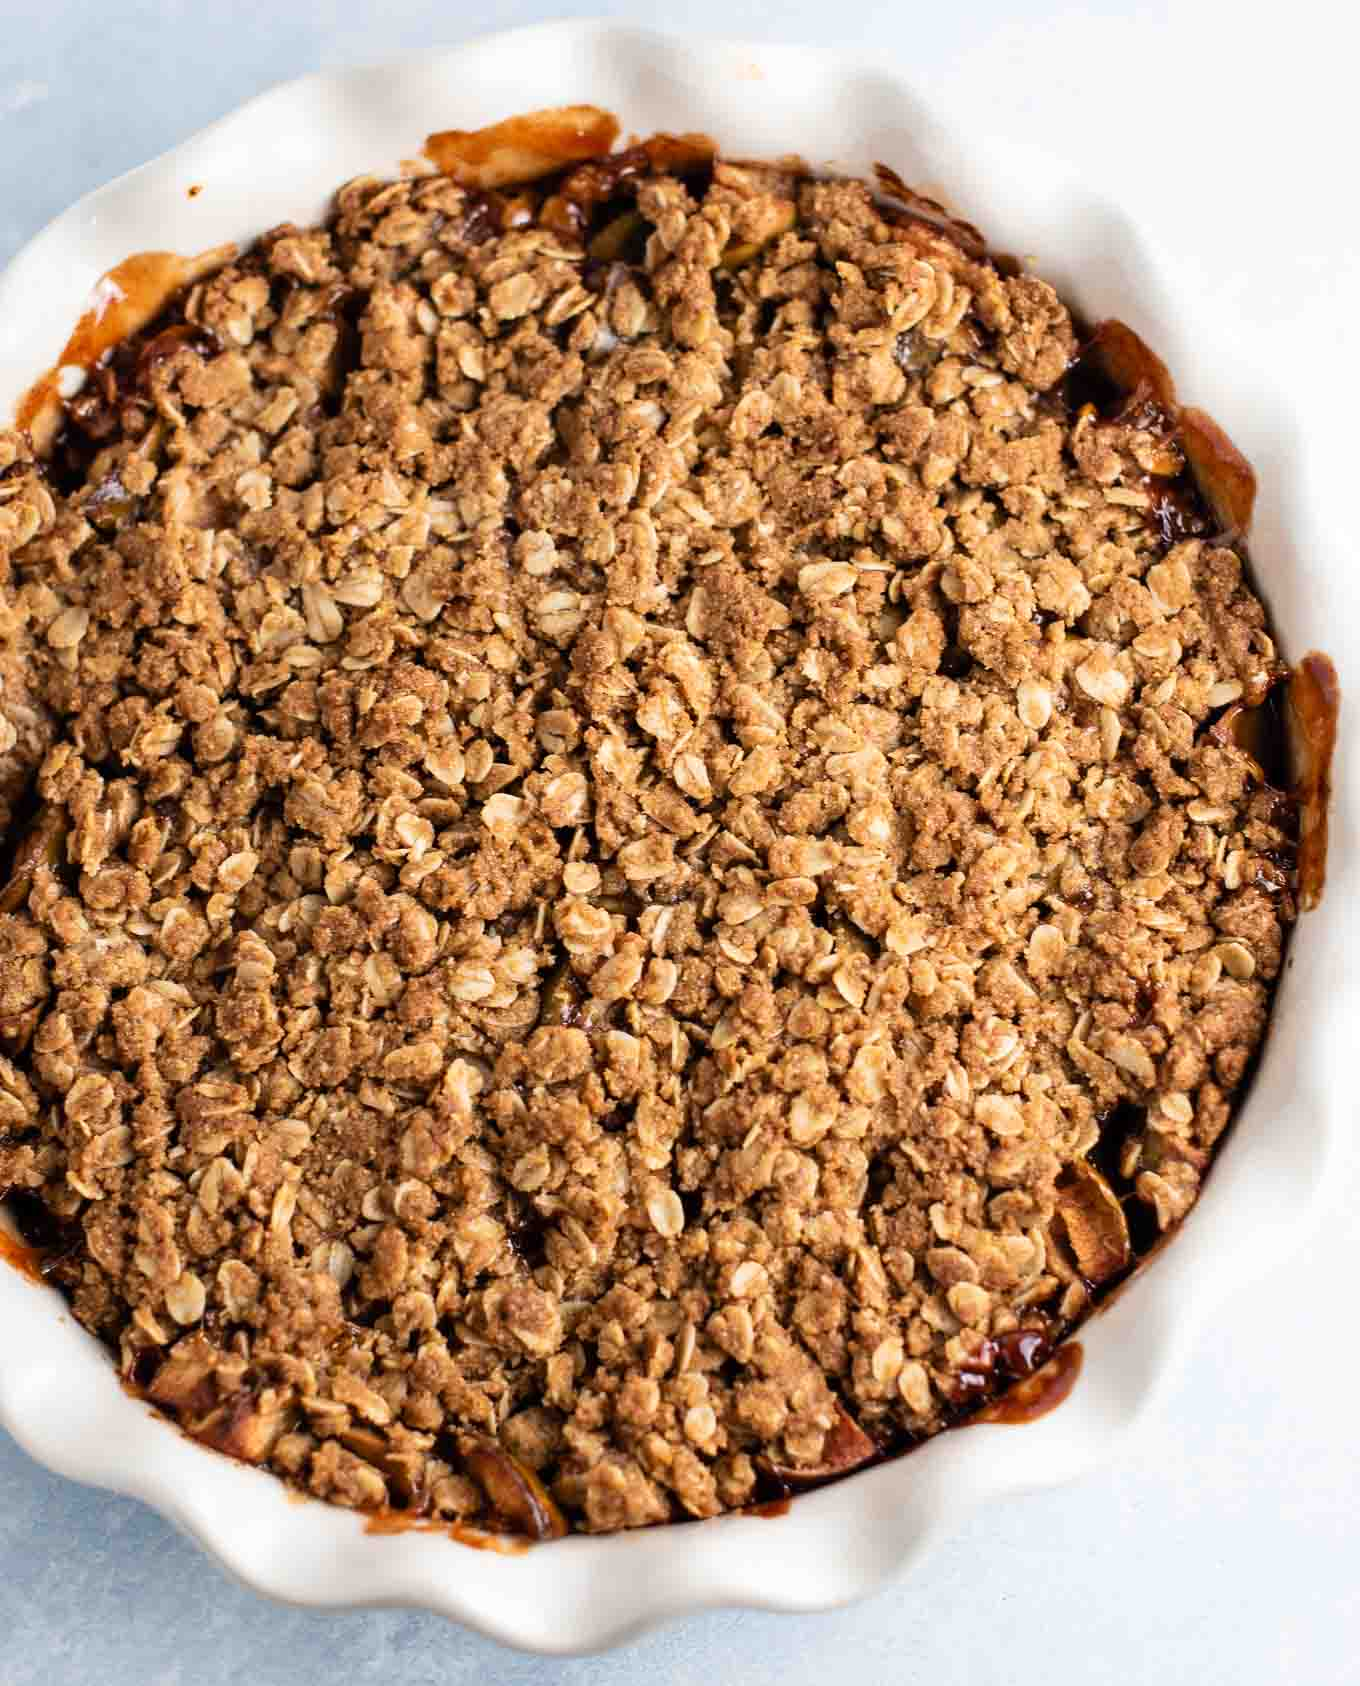 apple crisp in a pie dish